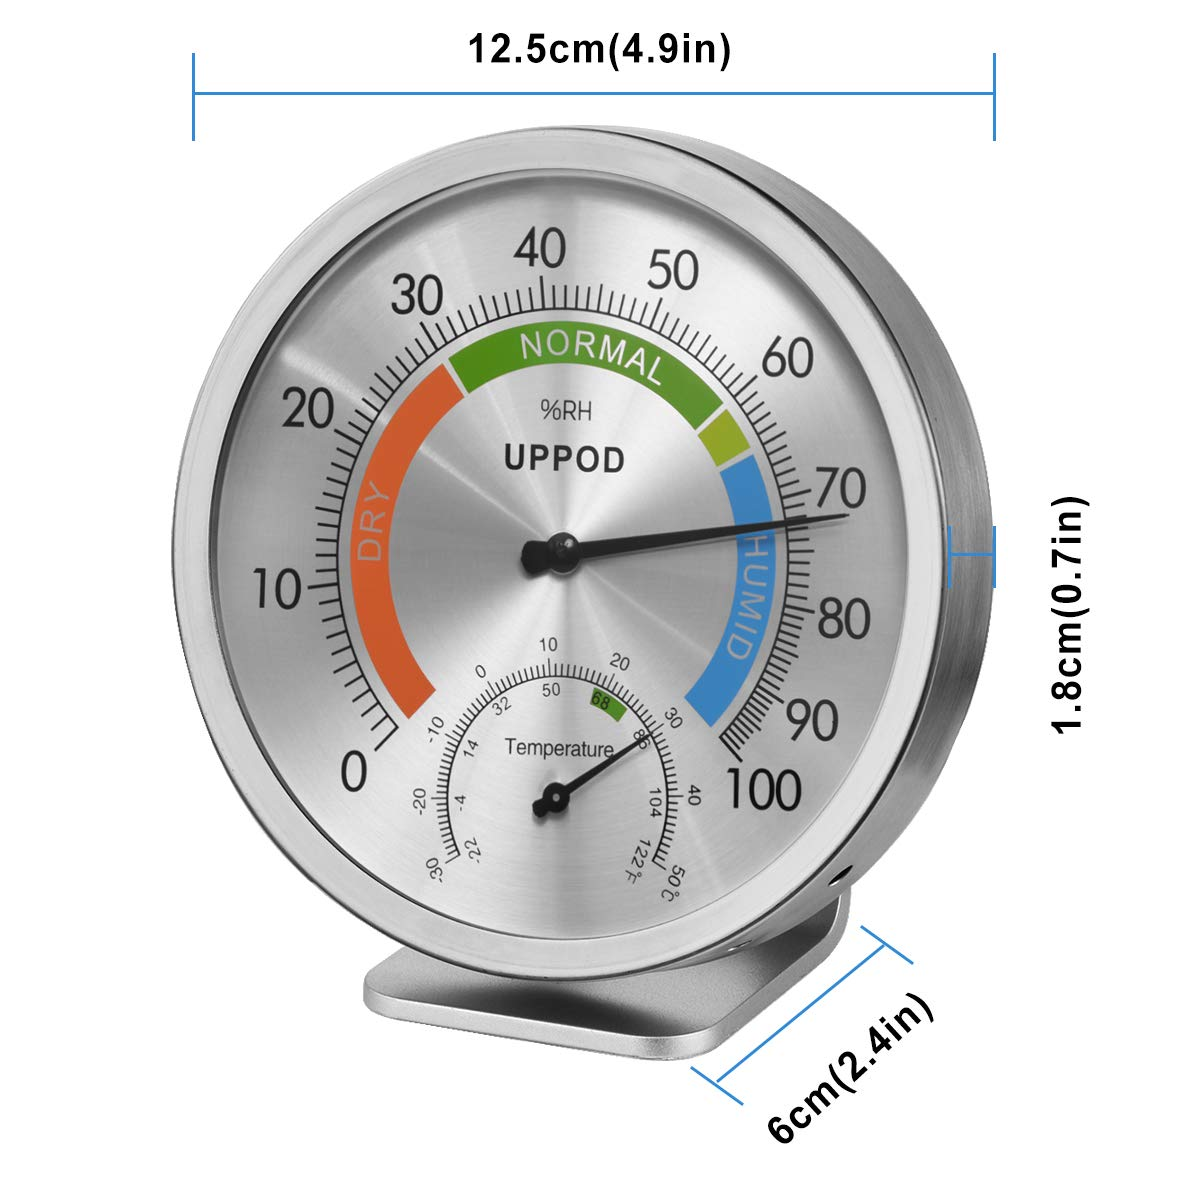 """5\"""" Hygrometer Thermometer Indoor Outdoor [UPDATED English Version], Humidity Gauge Indicator Temperature Humidity Monitor, Analog Hygrometer Humidor for Patio, Wall Decorative, Room, Home, Office 61XMD7958ML"""